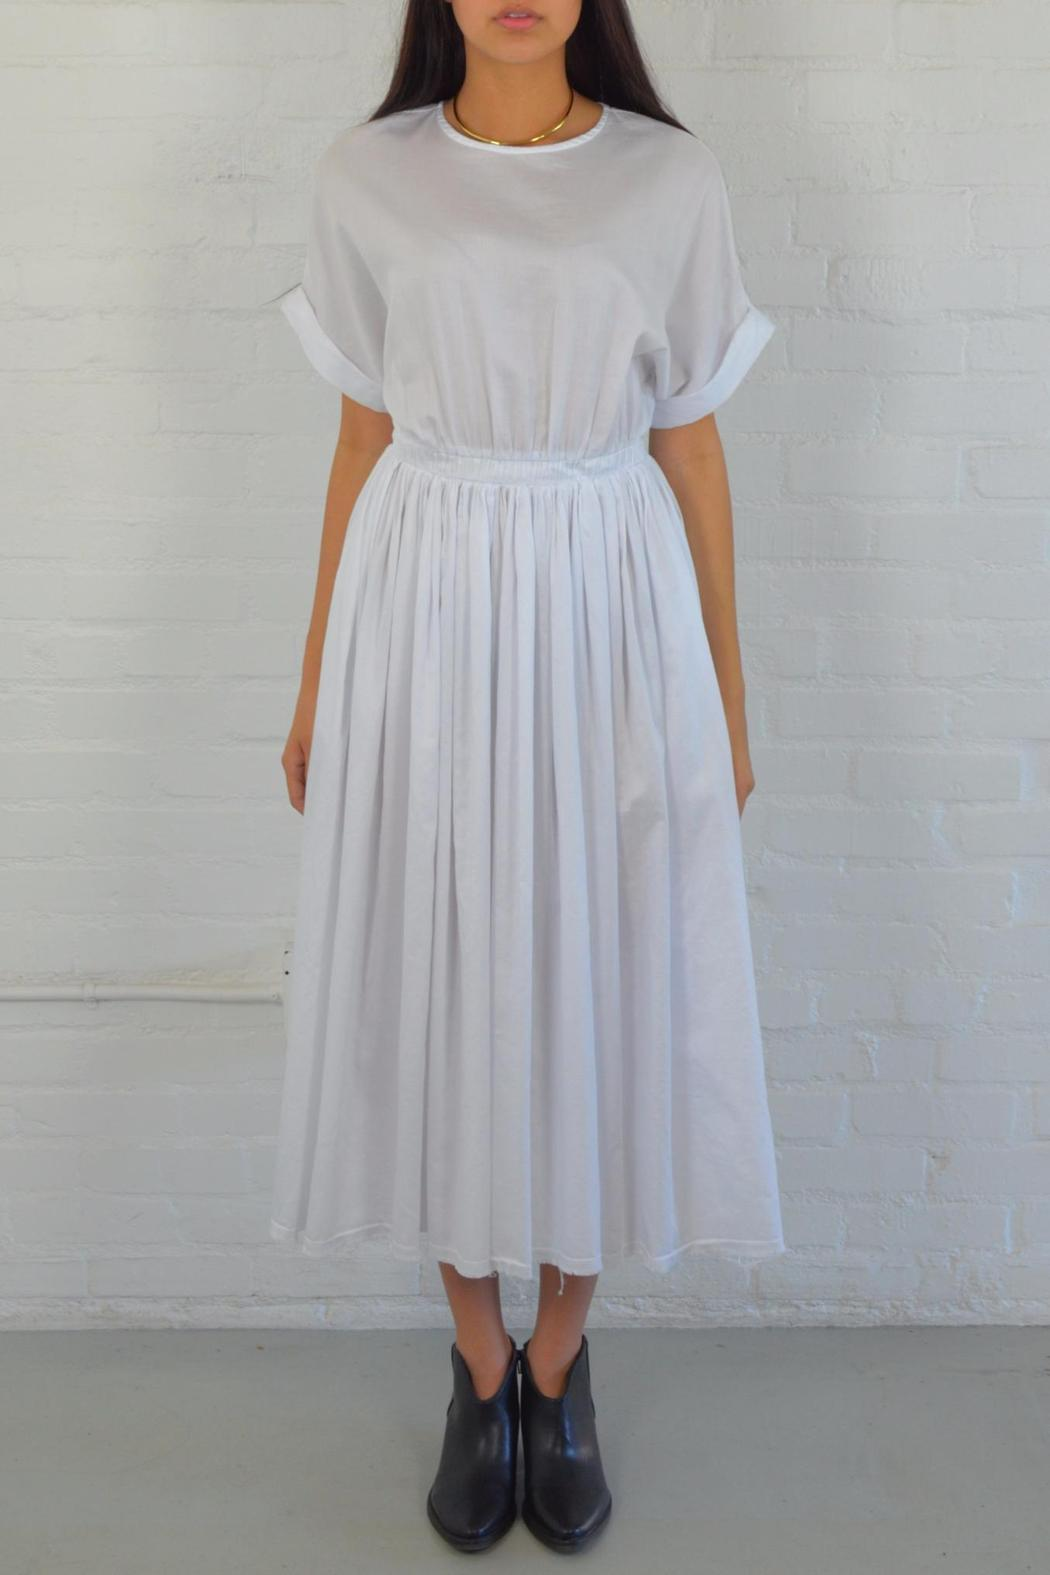 Black Crane White Pleats Dress From Arizona By Hub